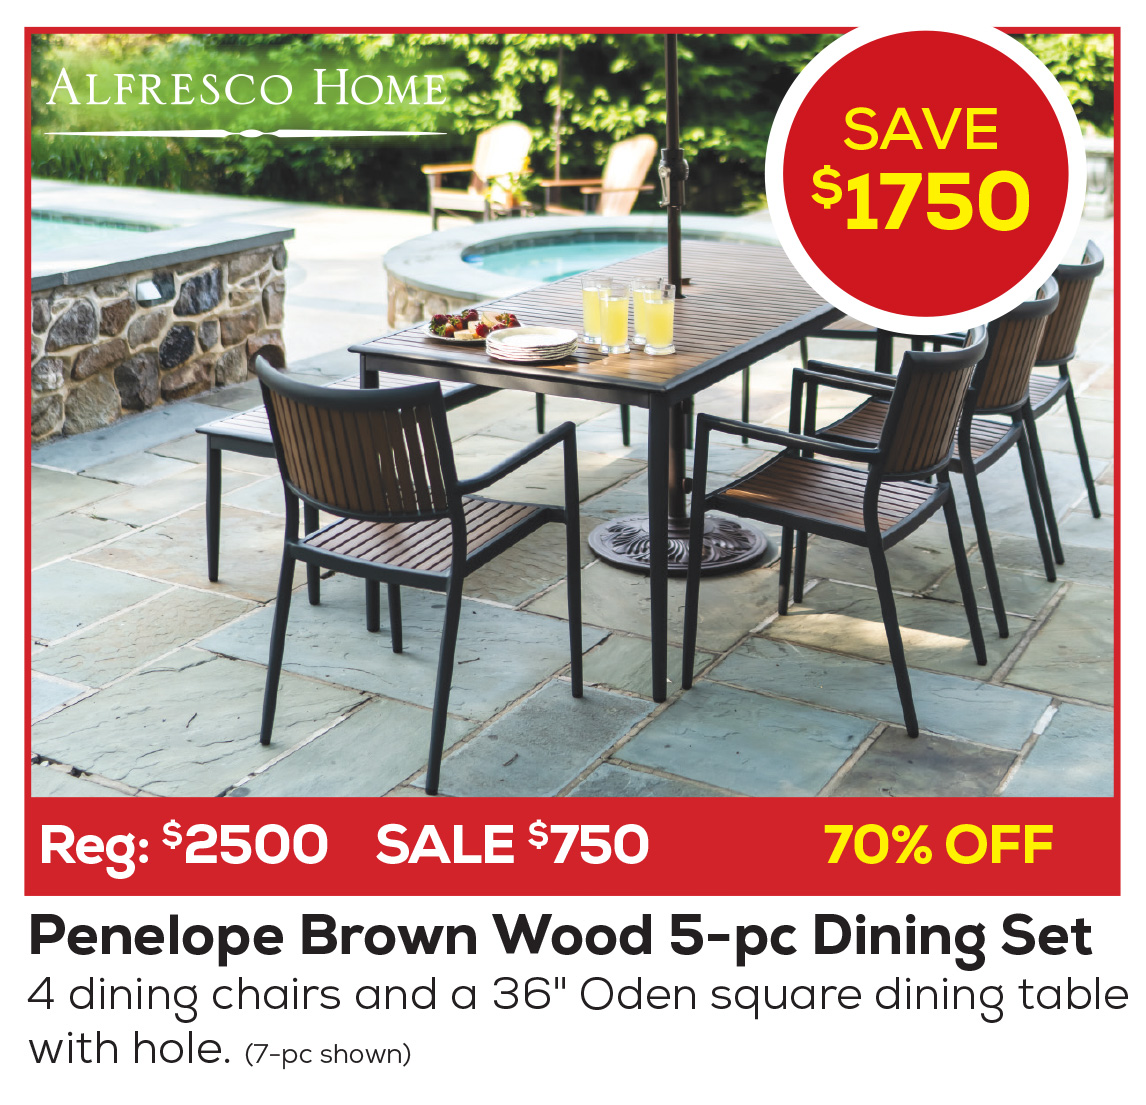 Alfresco Home Deals